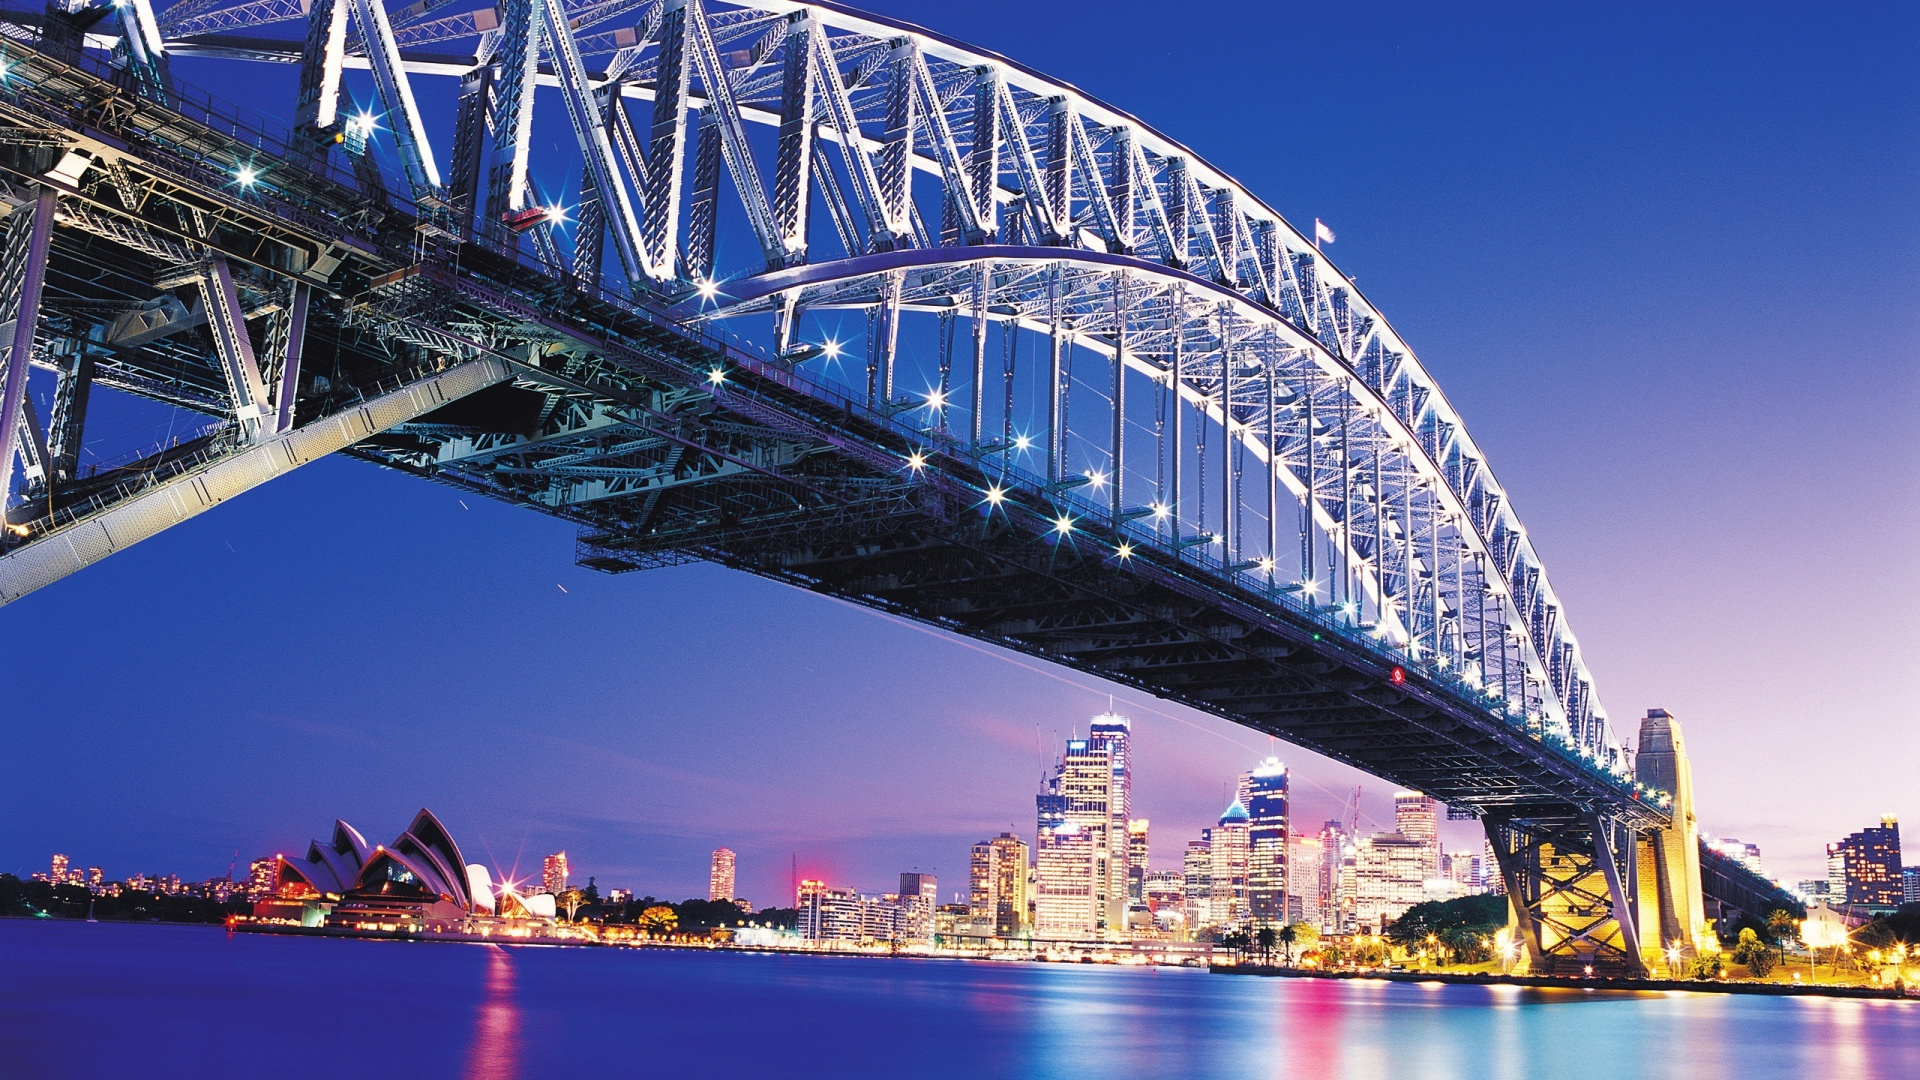 ... x 1440 Original. Description: Download Amazing Sydney Bridge ...